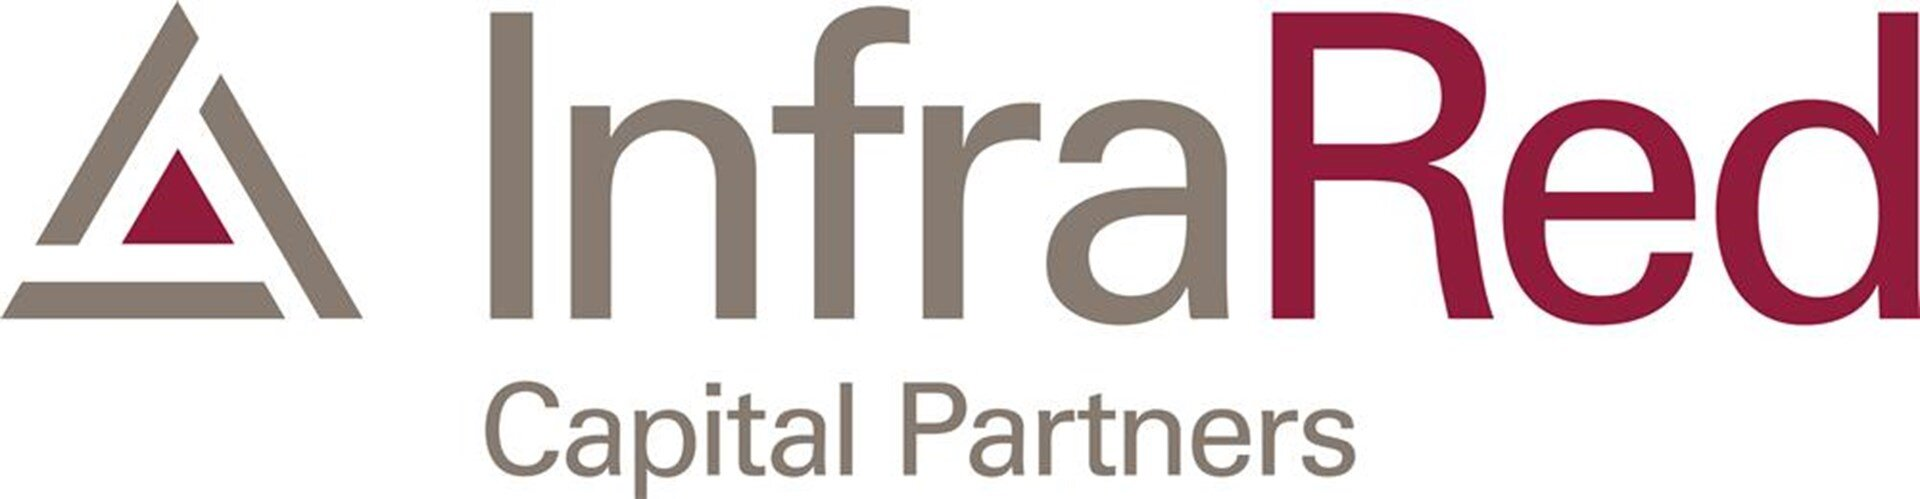 InfraRed Capital Partners are a leading global investment manager focused on infrastructure and real estate. We create real value for our investors, project partners, communities and end users. -